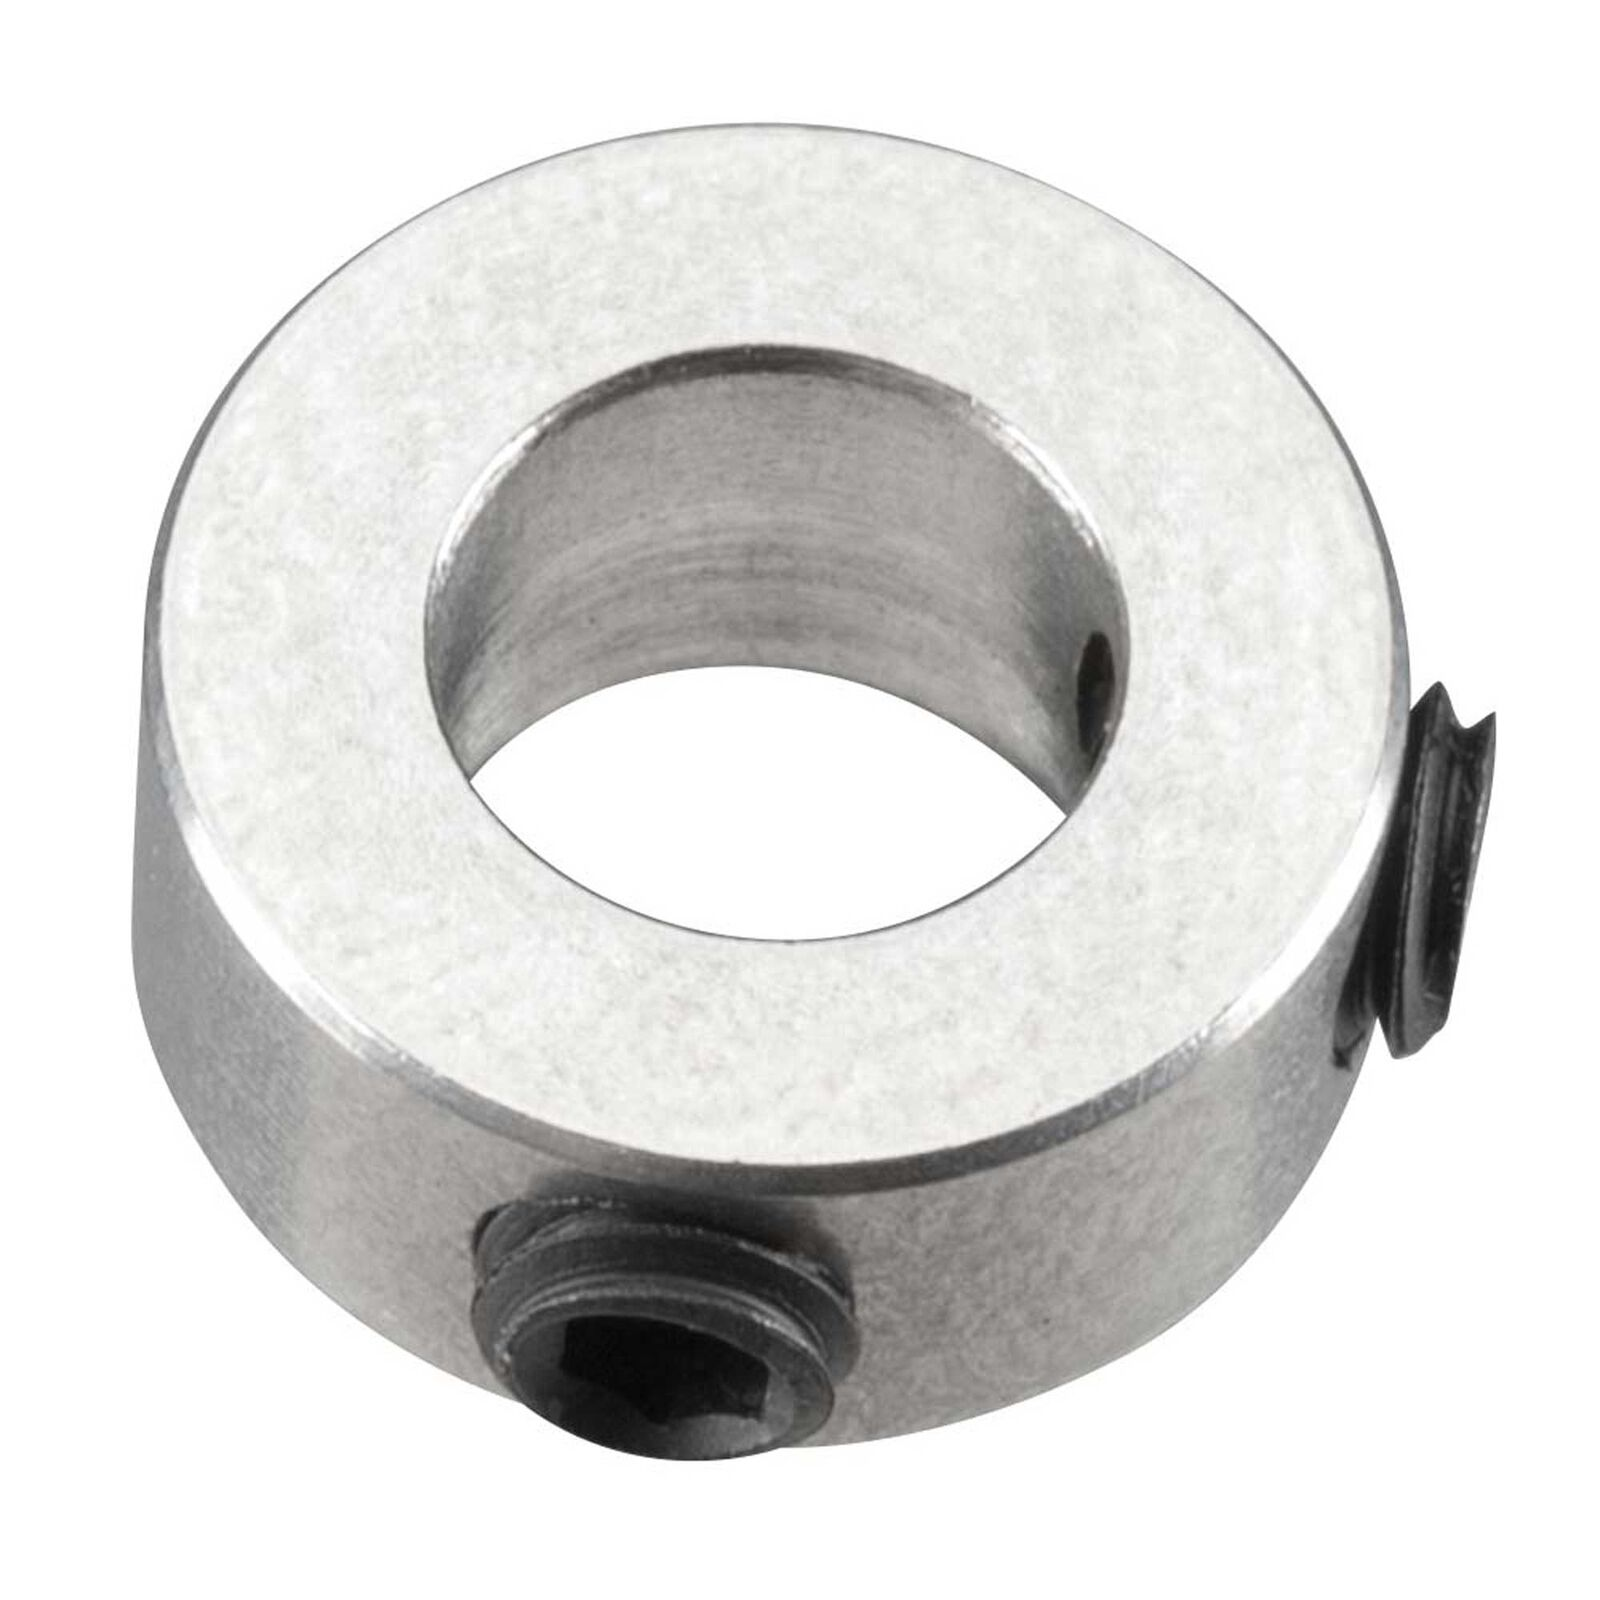 Security Ring: OMA-38 Series